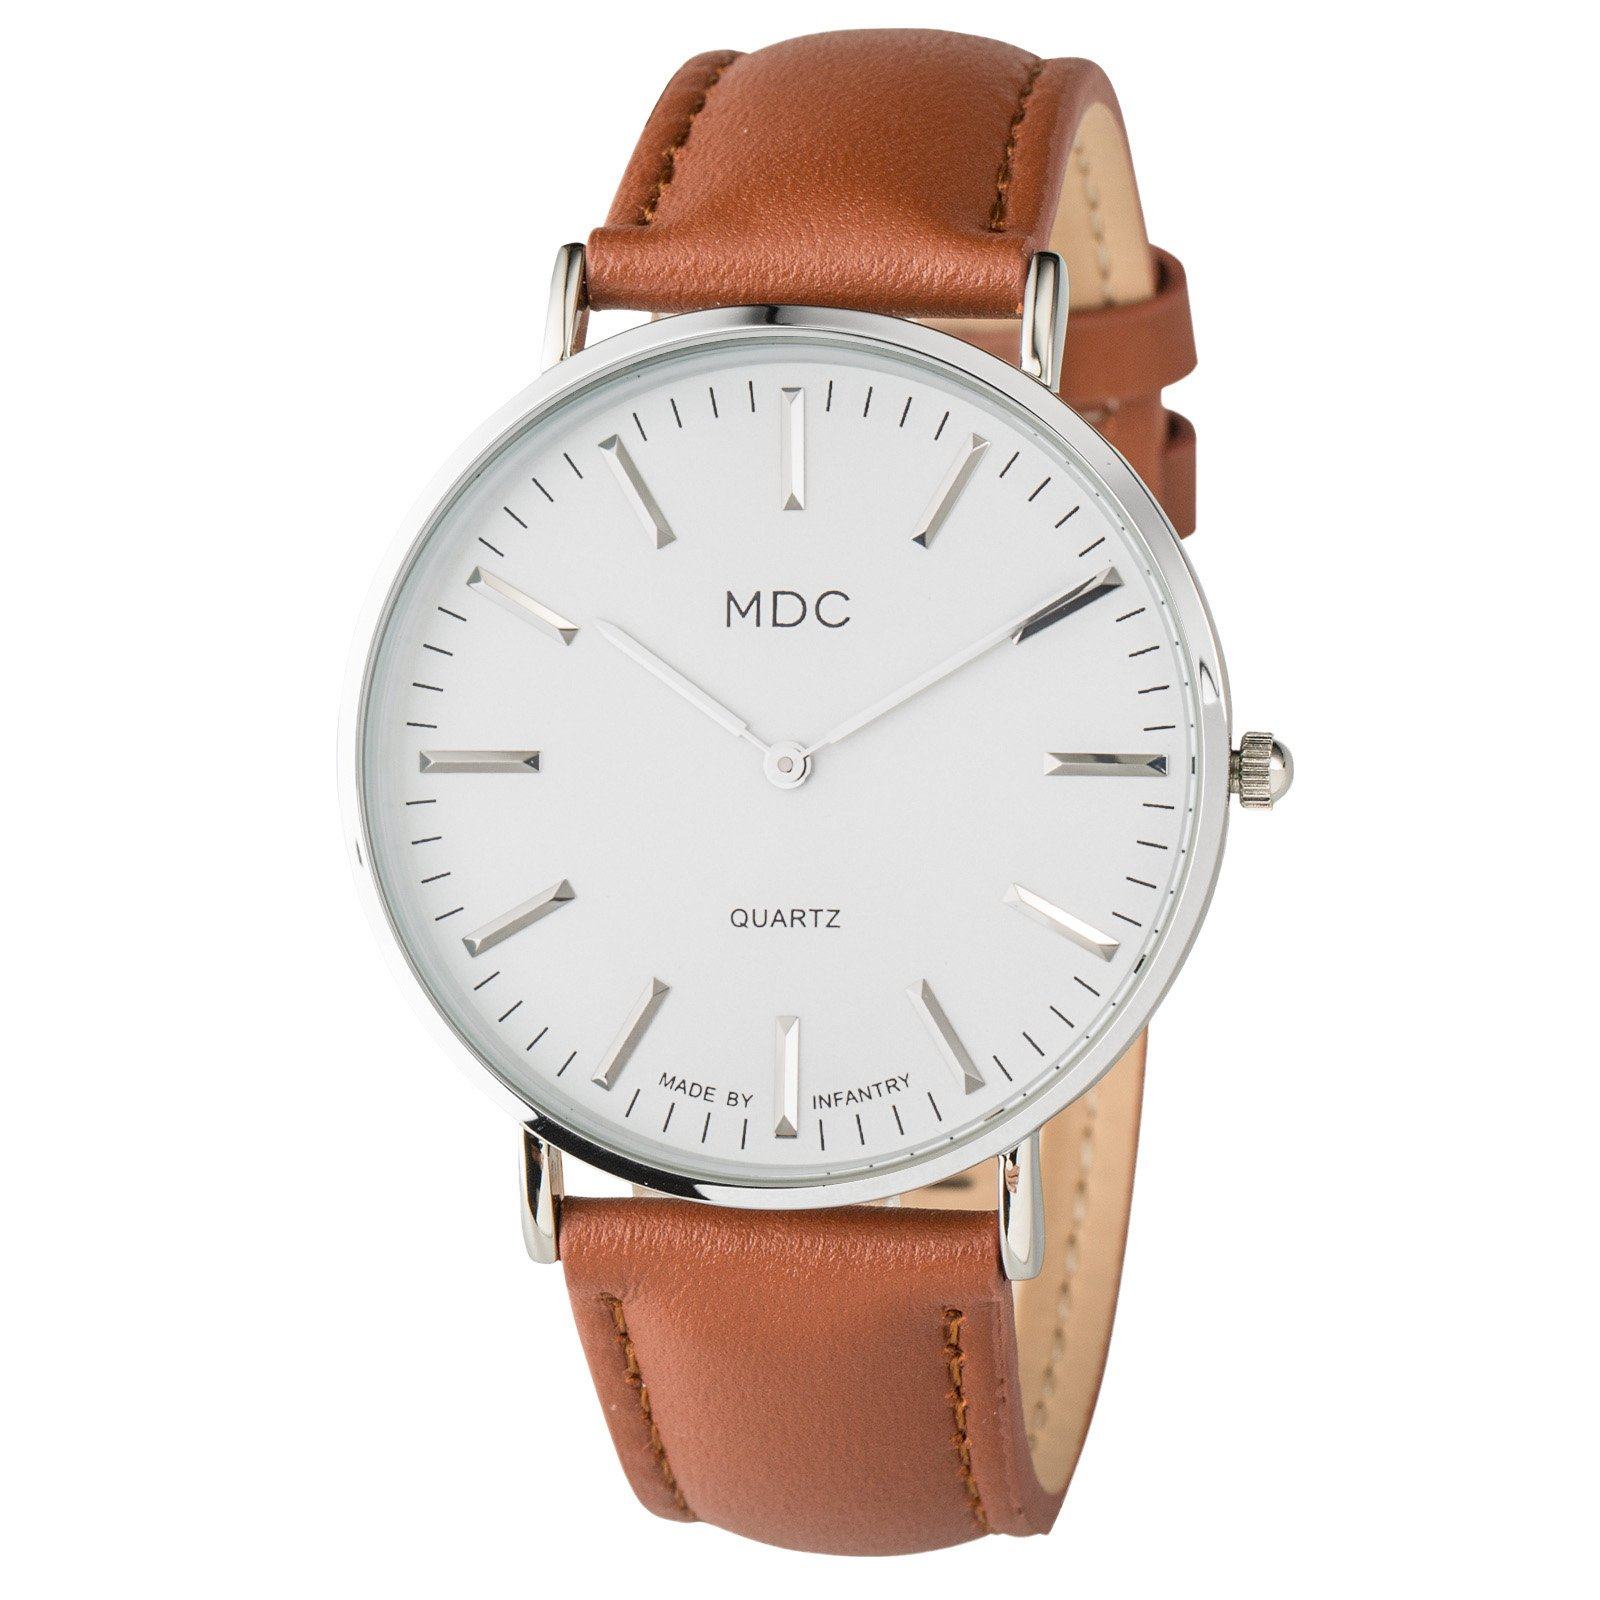 MDC Mens Classic Brown Leather Watch Slim Business Casual Fashion Wrist Watches for Men